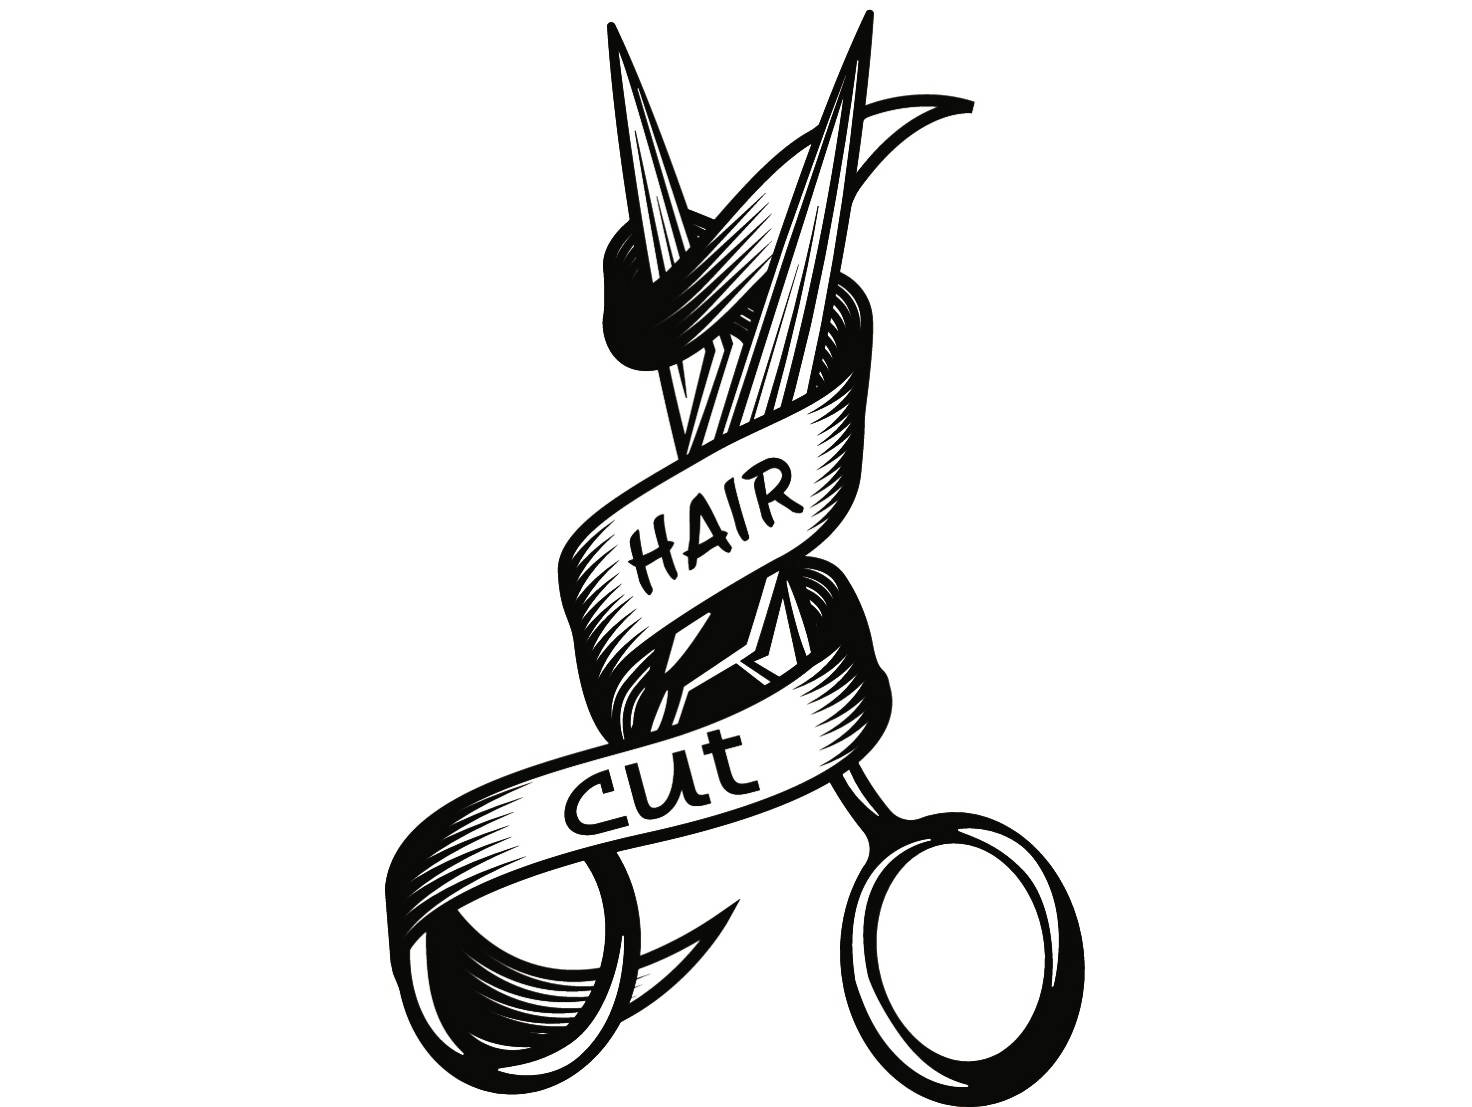 1472x1107 Hairstylist Logo 3 Scissors Salon Barber Shop Haircut Hair